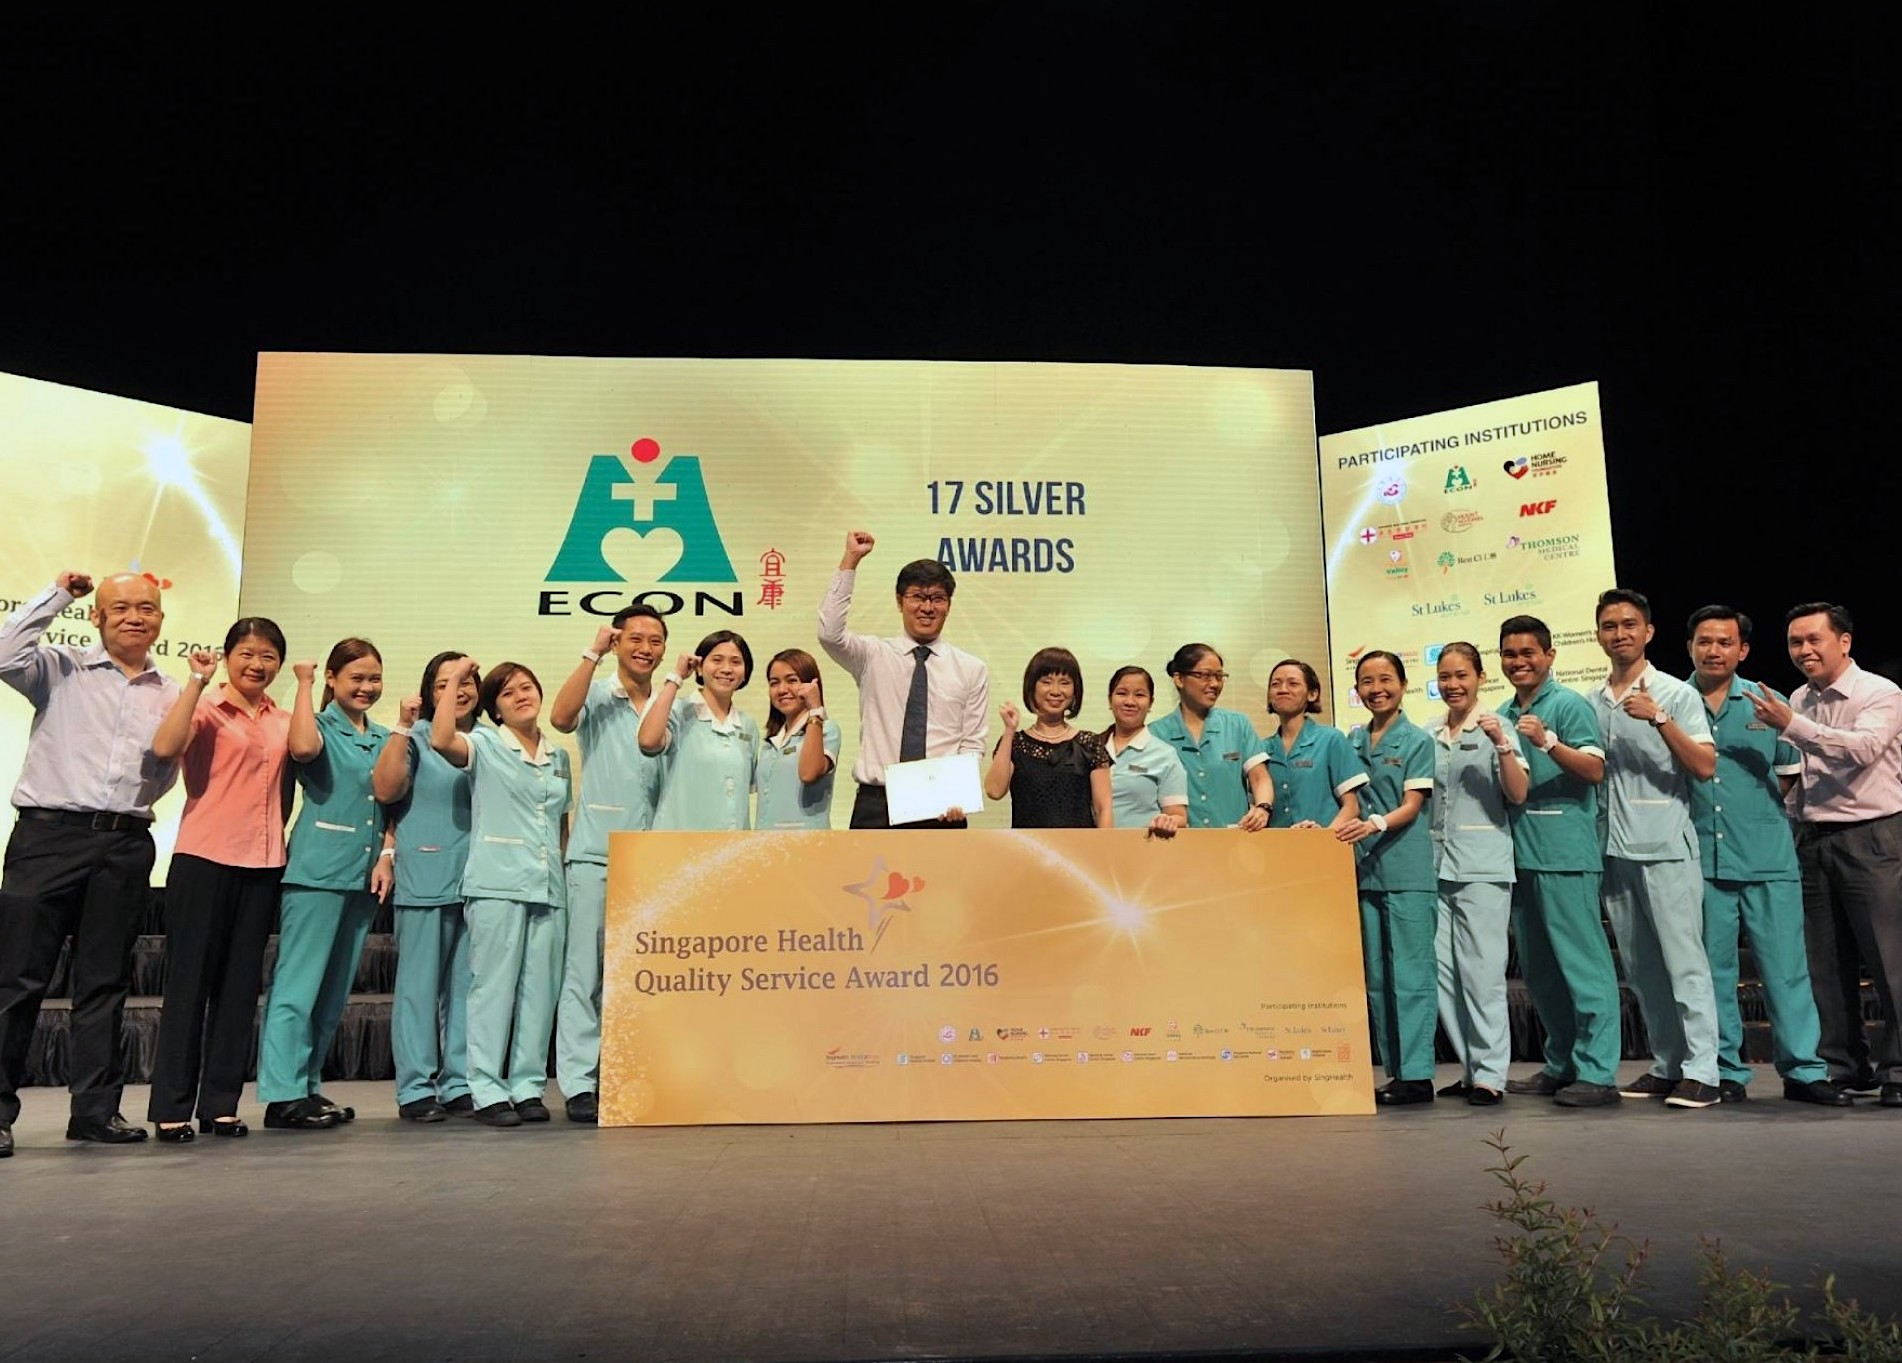 ECON Healthcare Group Wins 17 Silver Awards at the Singapore Health Quality Service Awards